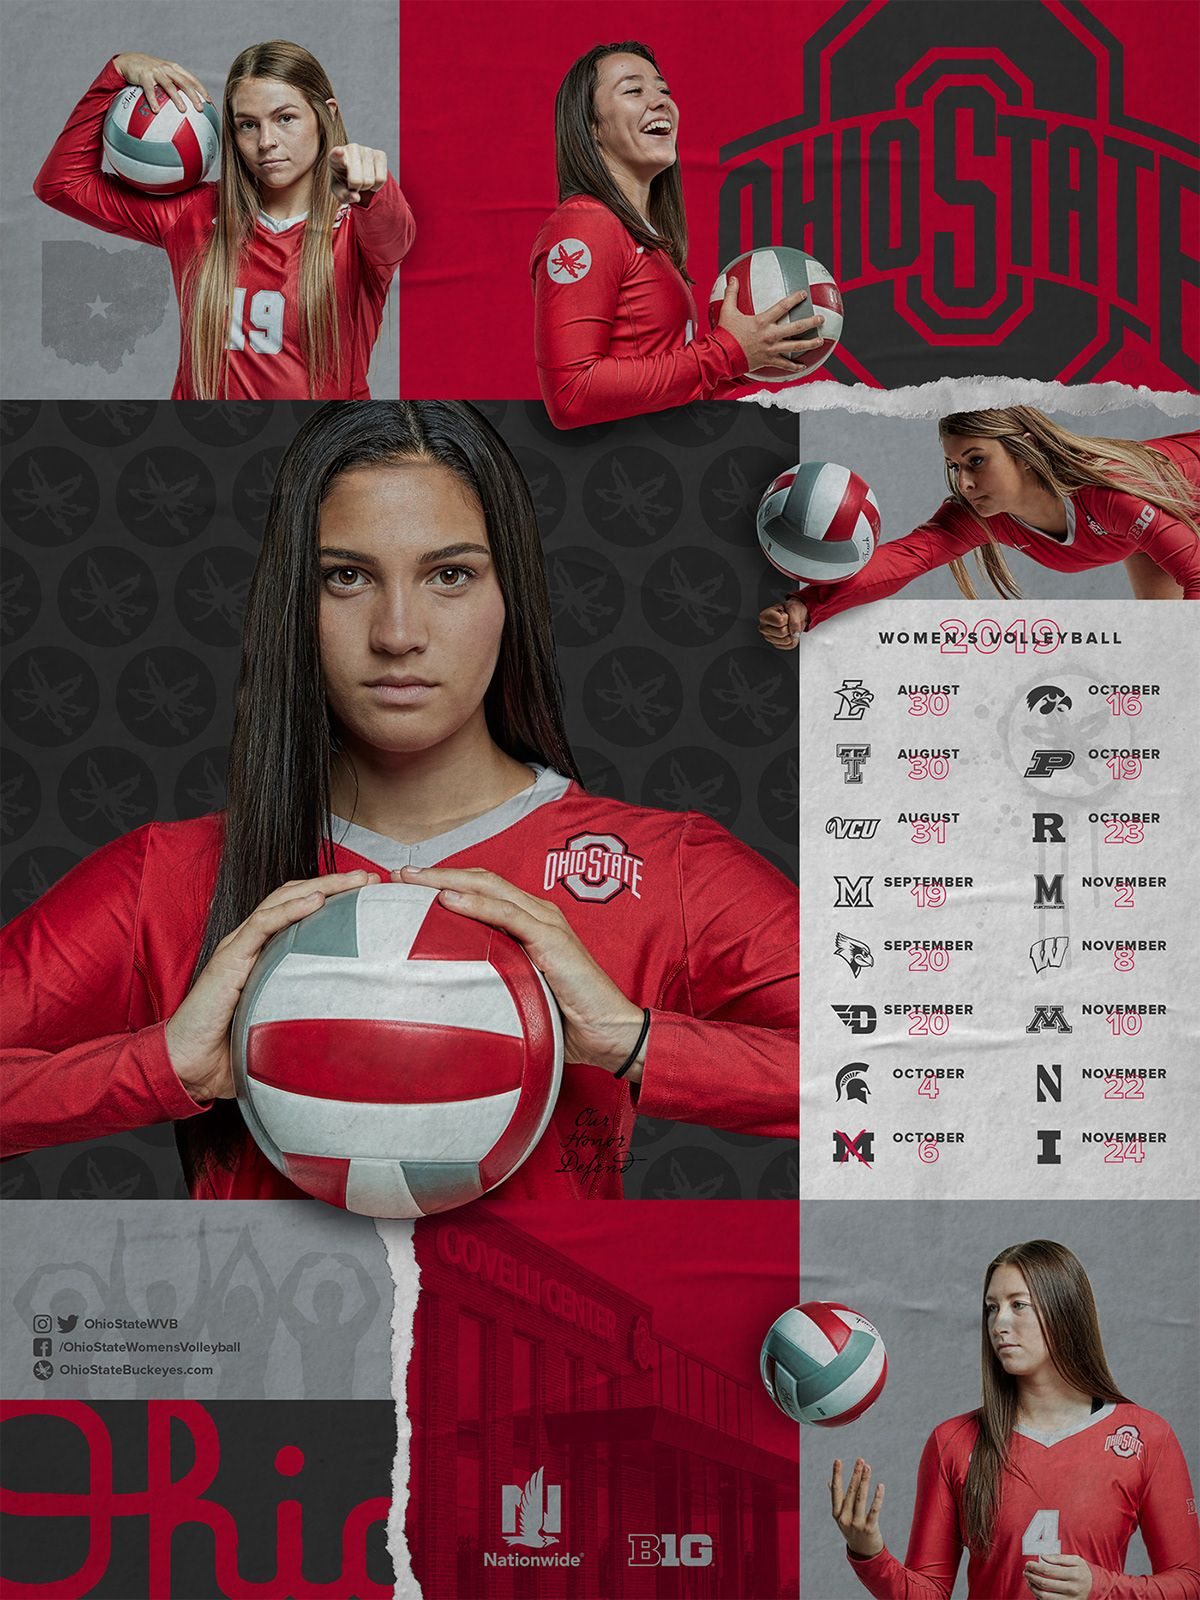 Michael Bower On Behance In 2020 Sports Graphic Design College Sports Graphics Sport Poster Design